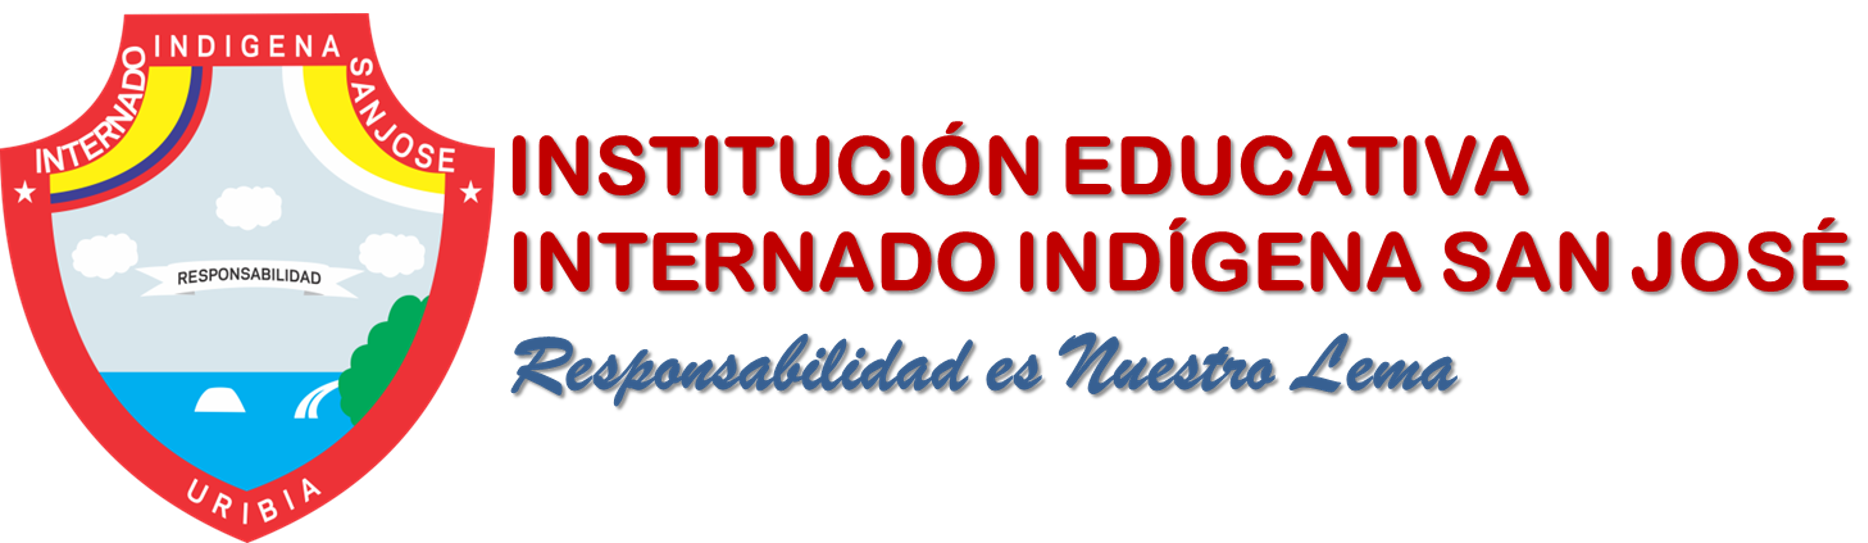 Institución Educativa Internado Indígena San jose